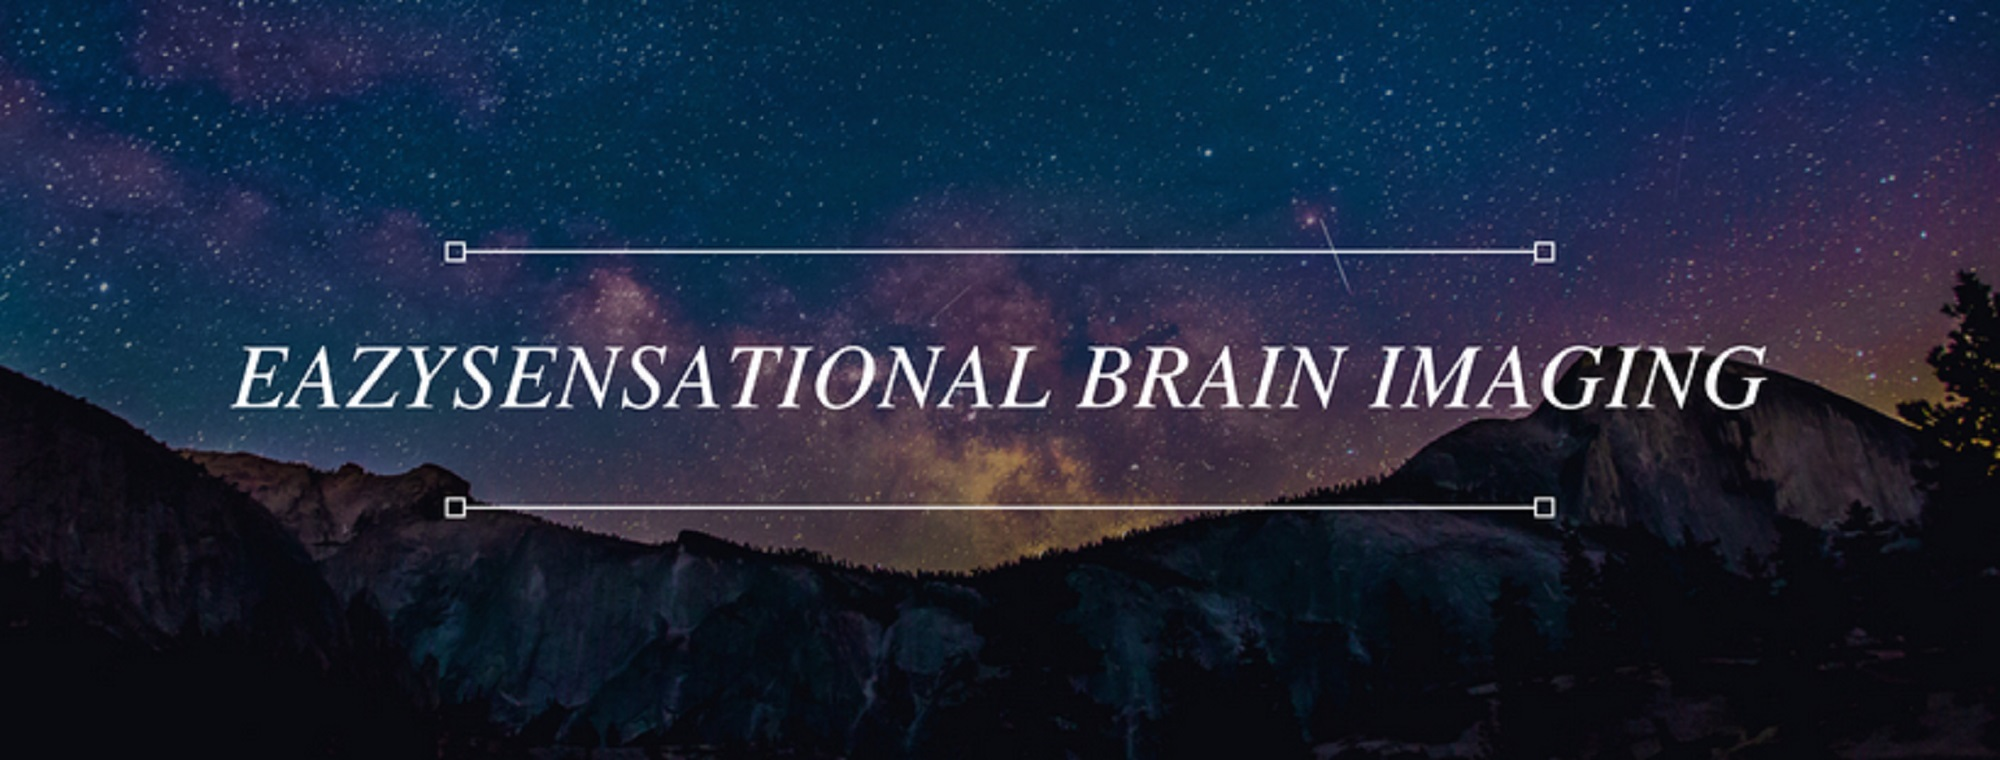 eazysensational brain imaging